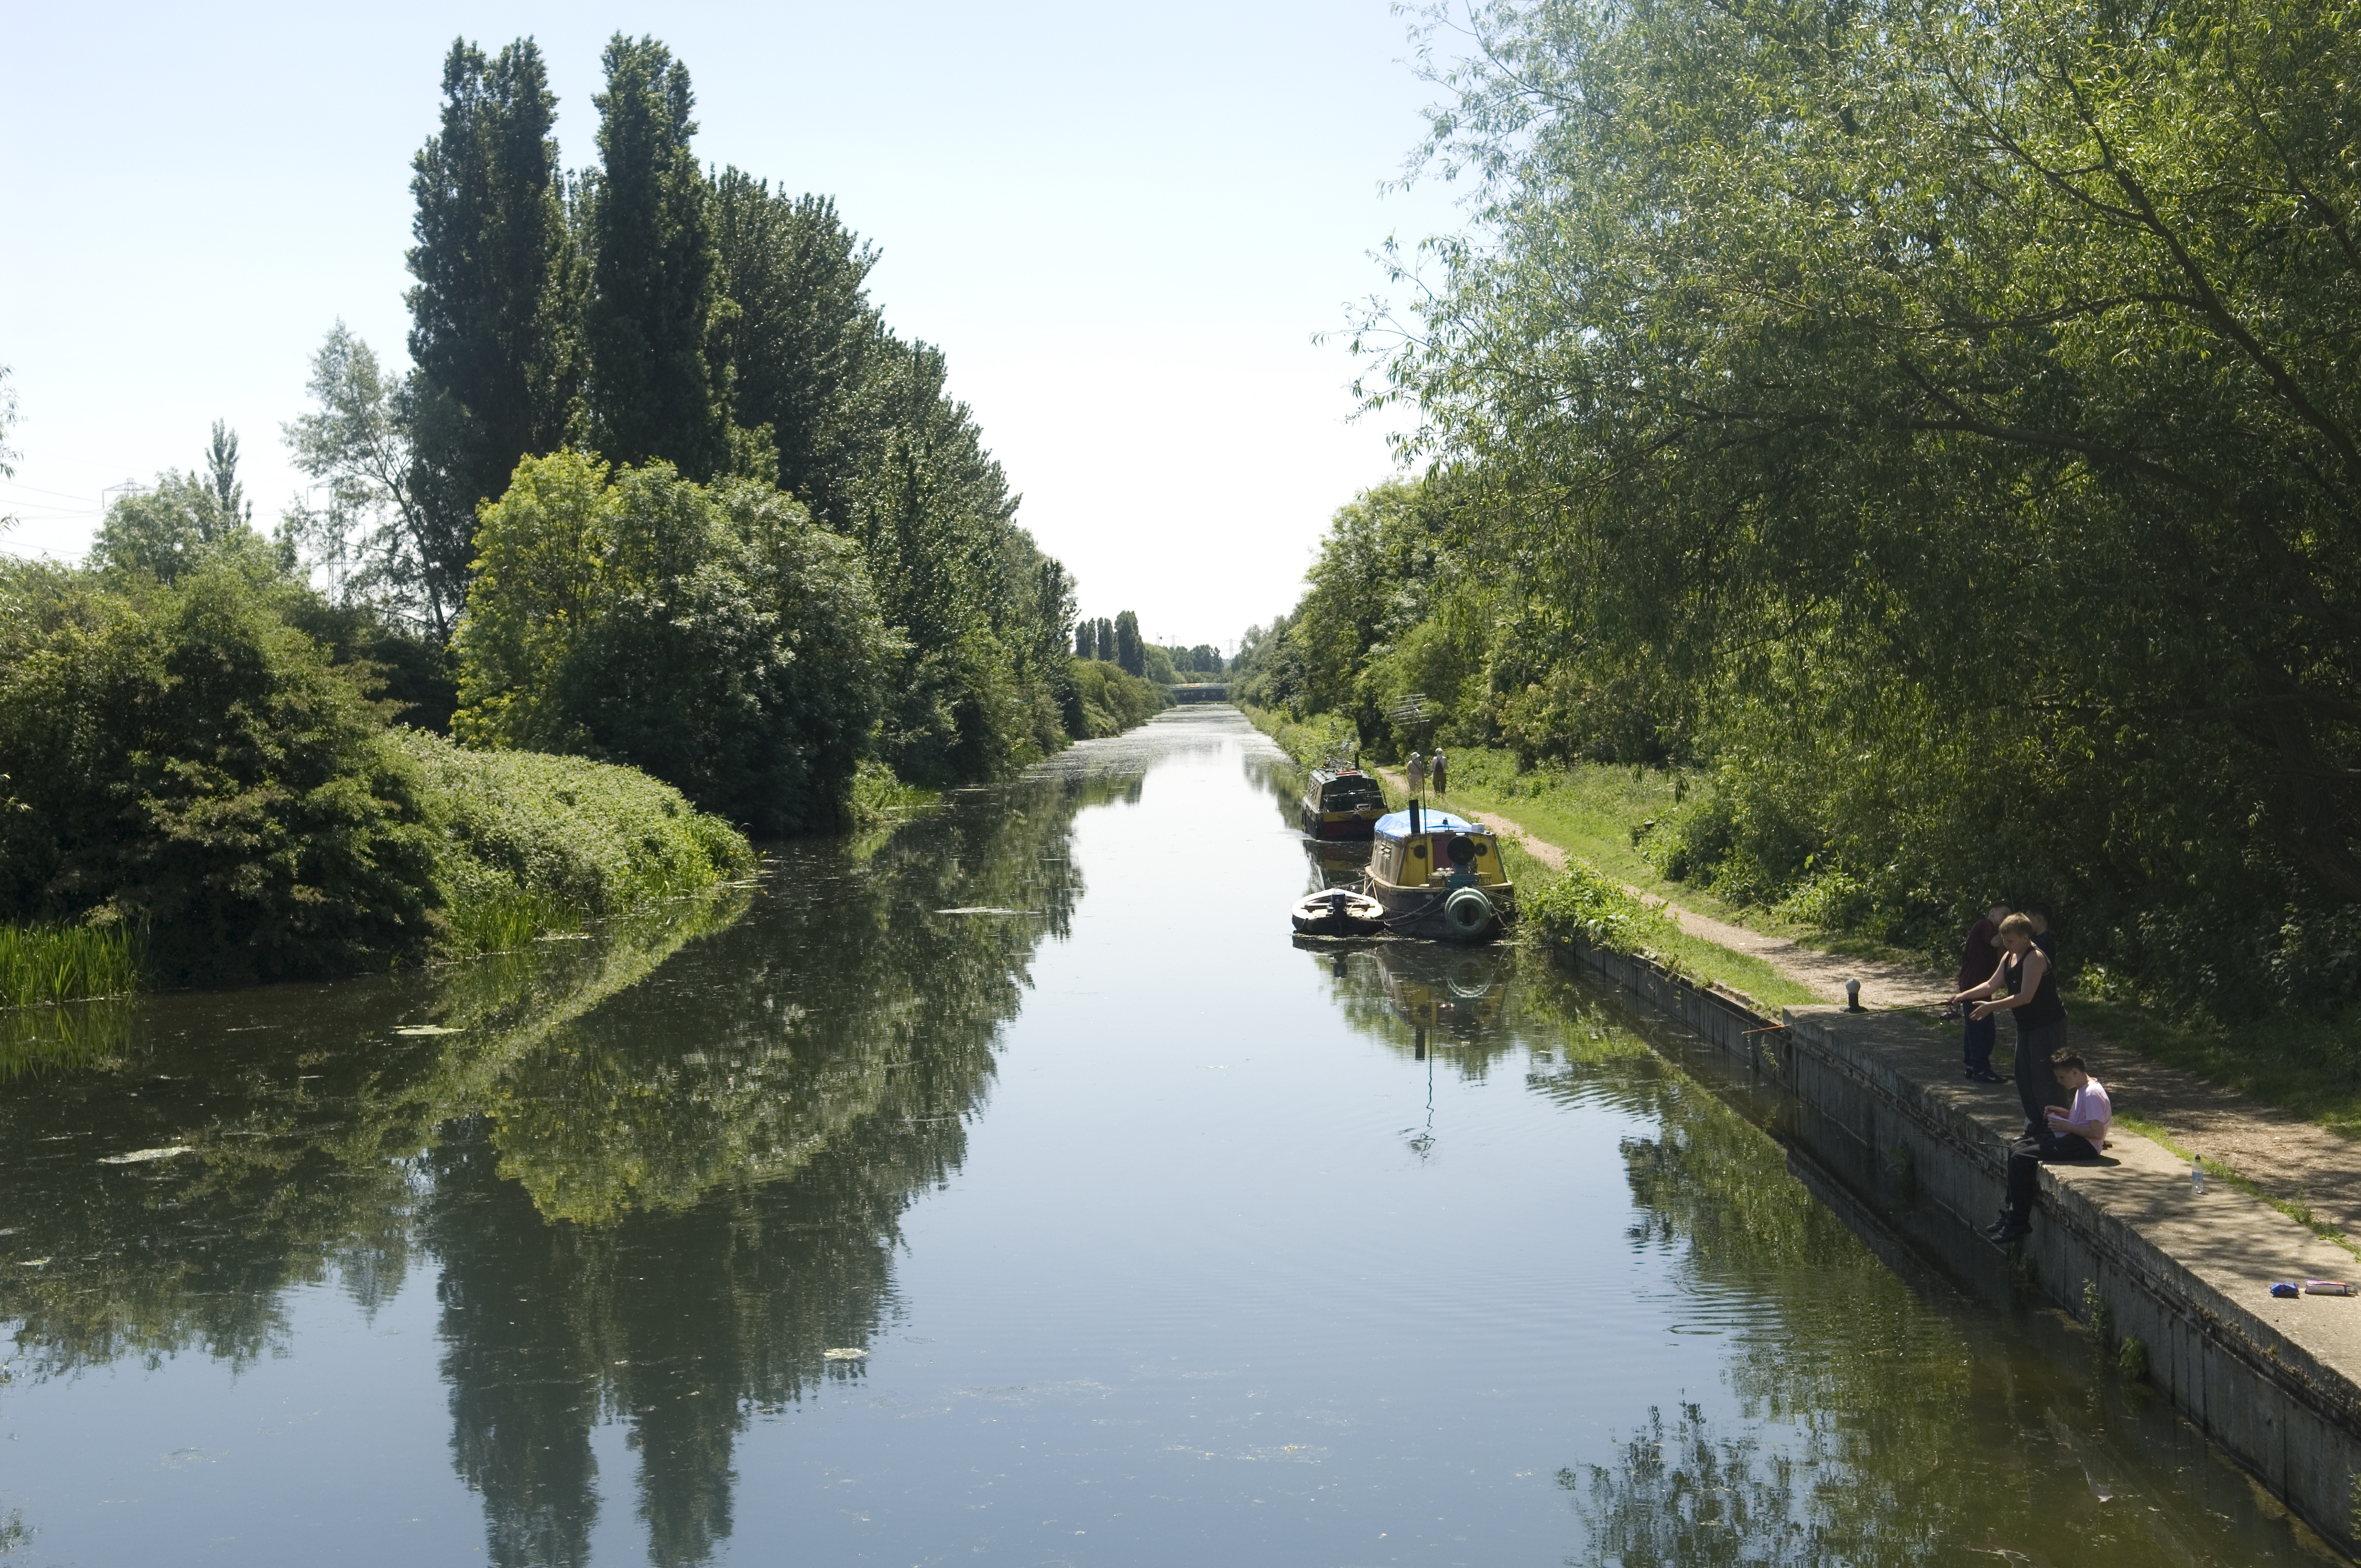 An image of the River Lea in London.